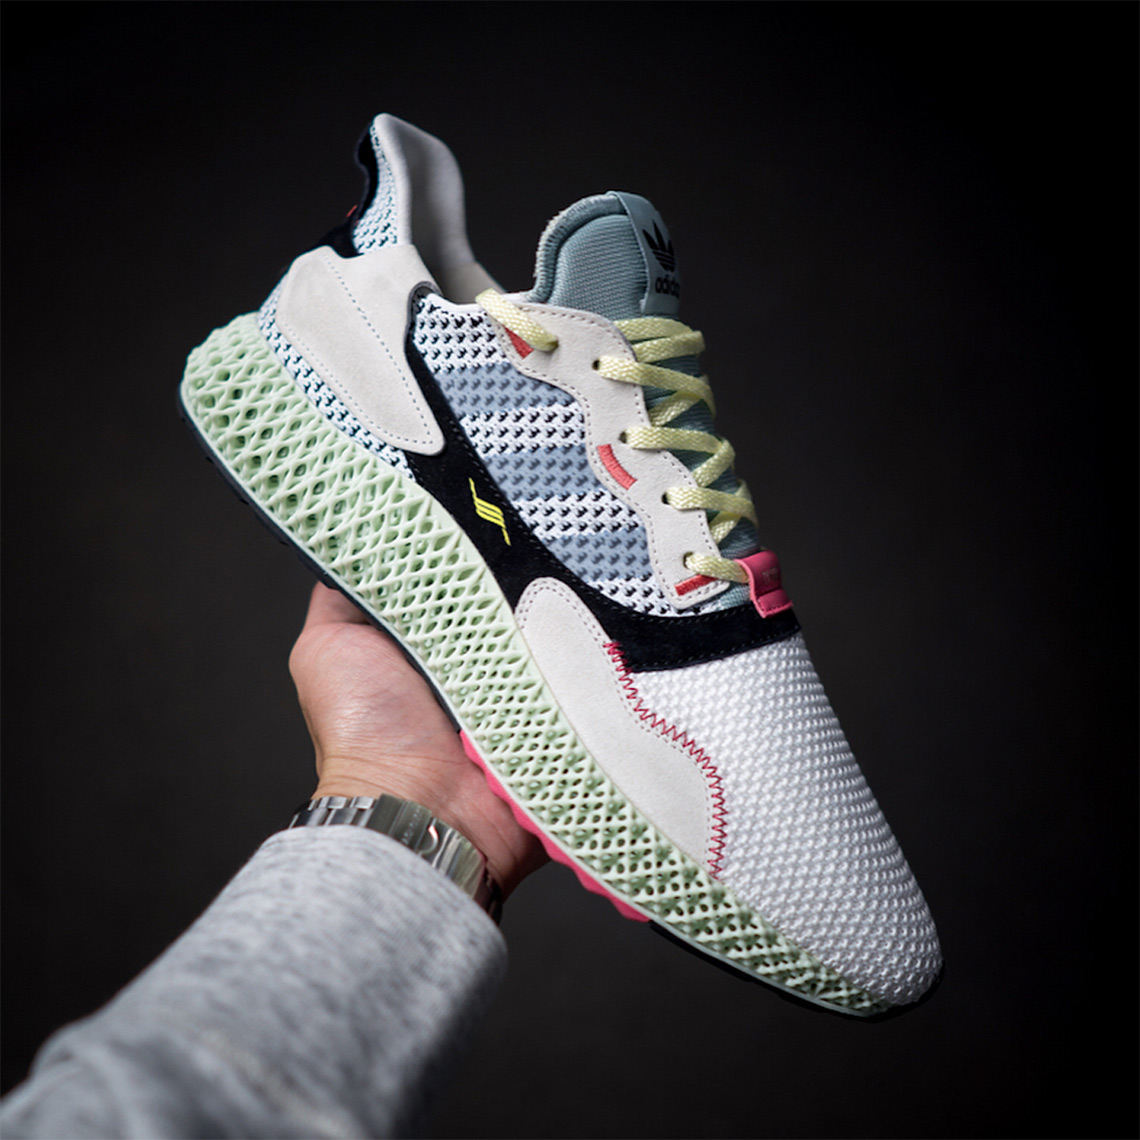 103838c2e54ae Peep a first look at the all new ZX4000 4D here and expect its release in  stores this Fall or Winter.